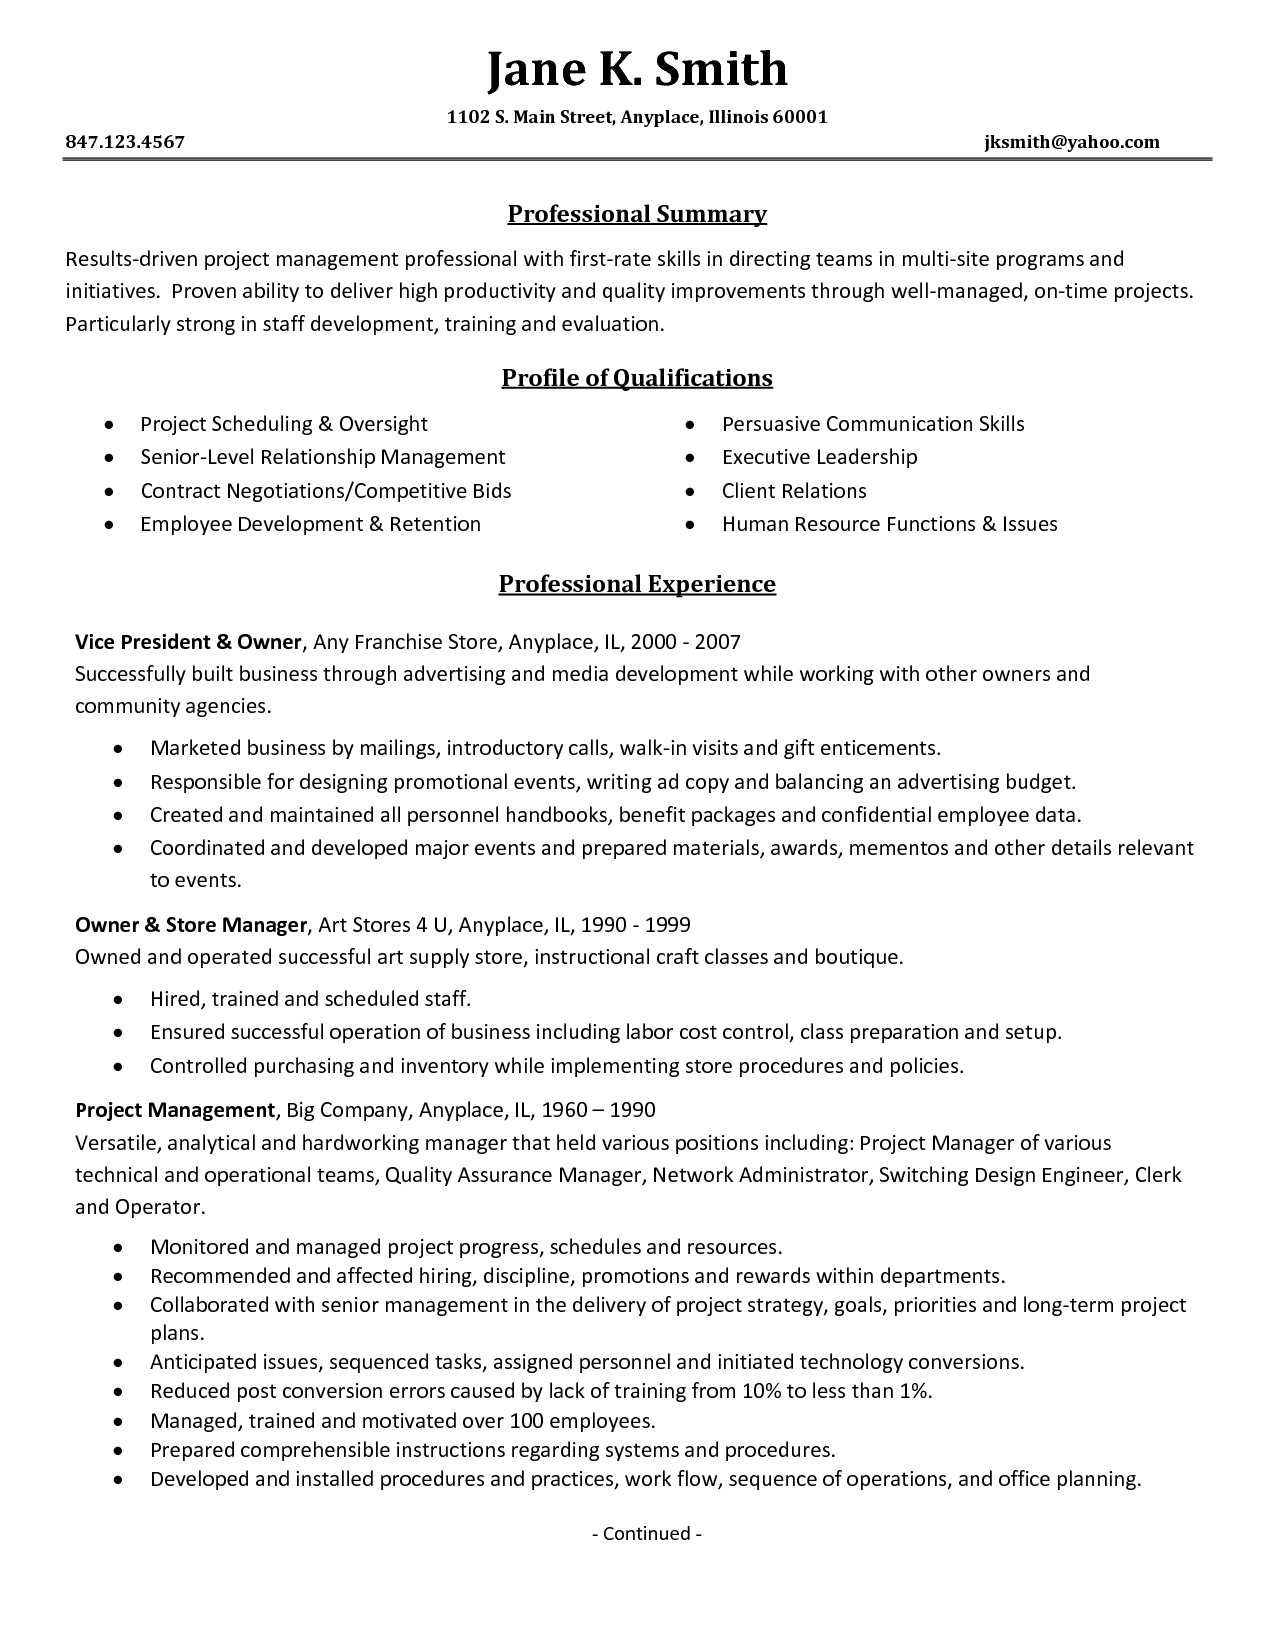 Project Management Skills Resume Leadership Skills Resume Leadership Skills Resume Template…  Job